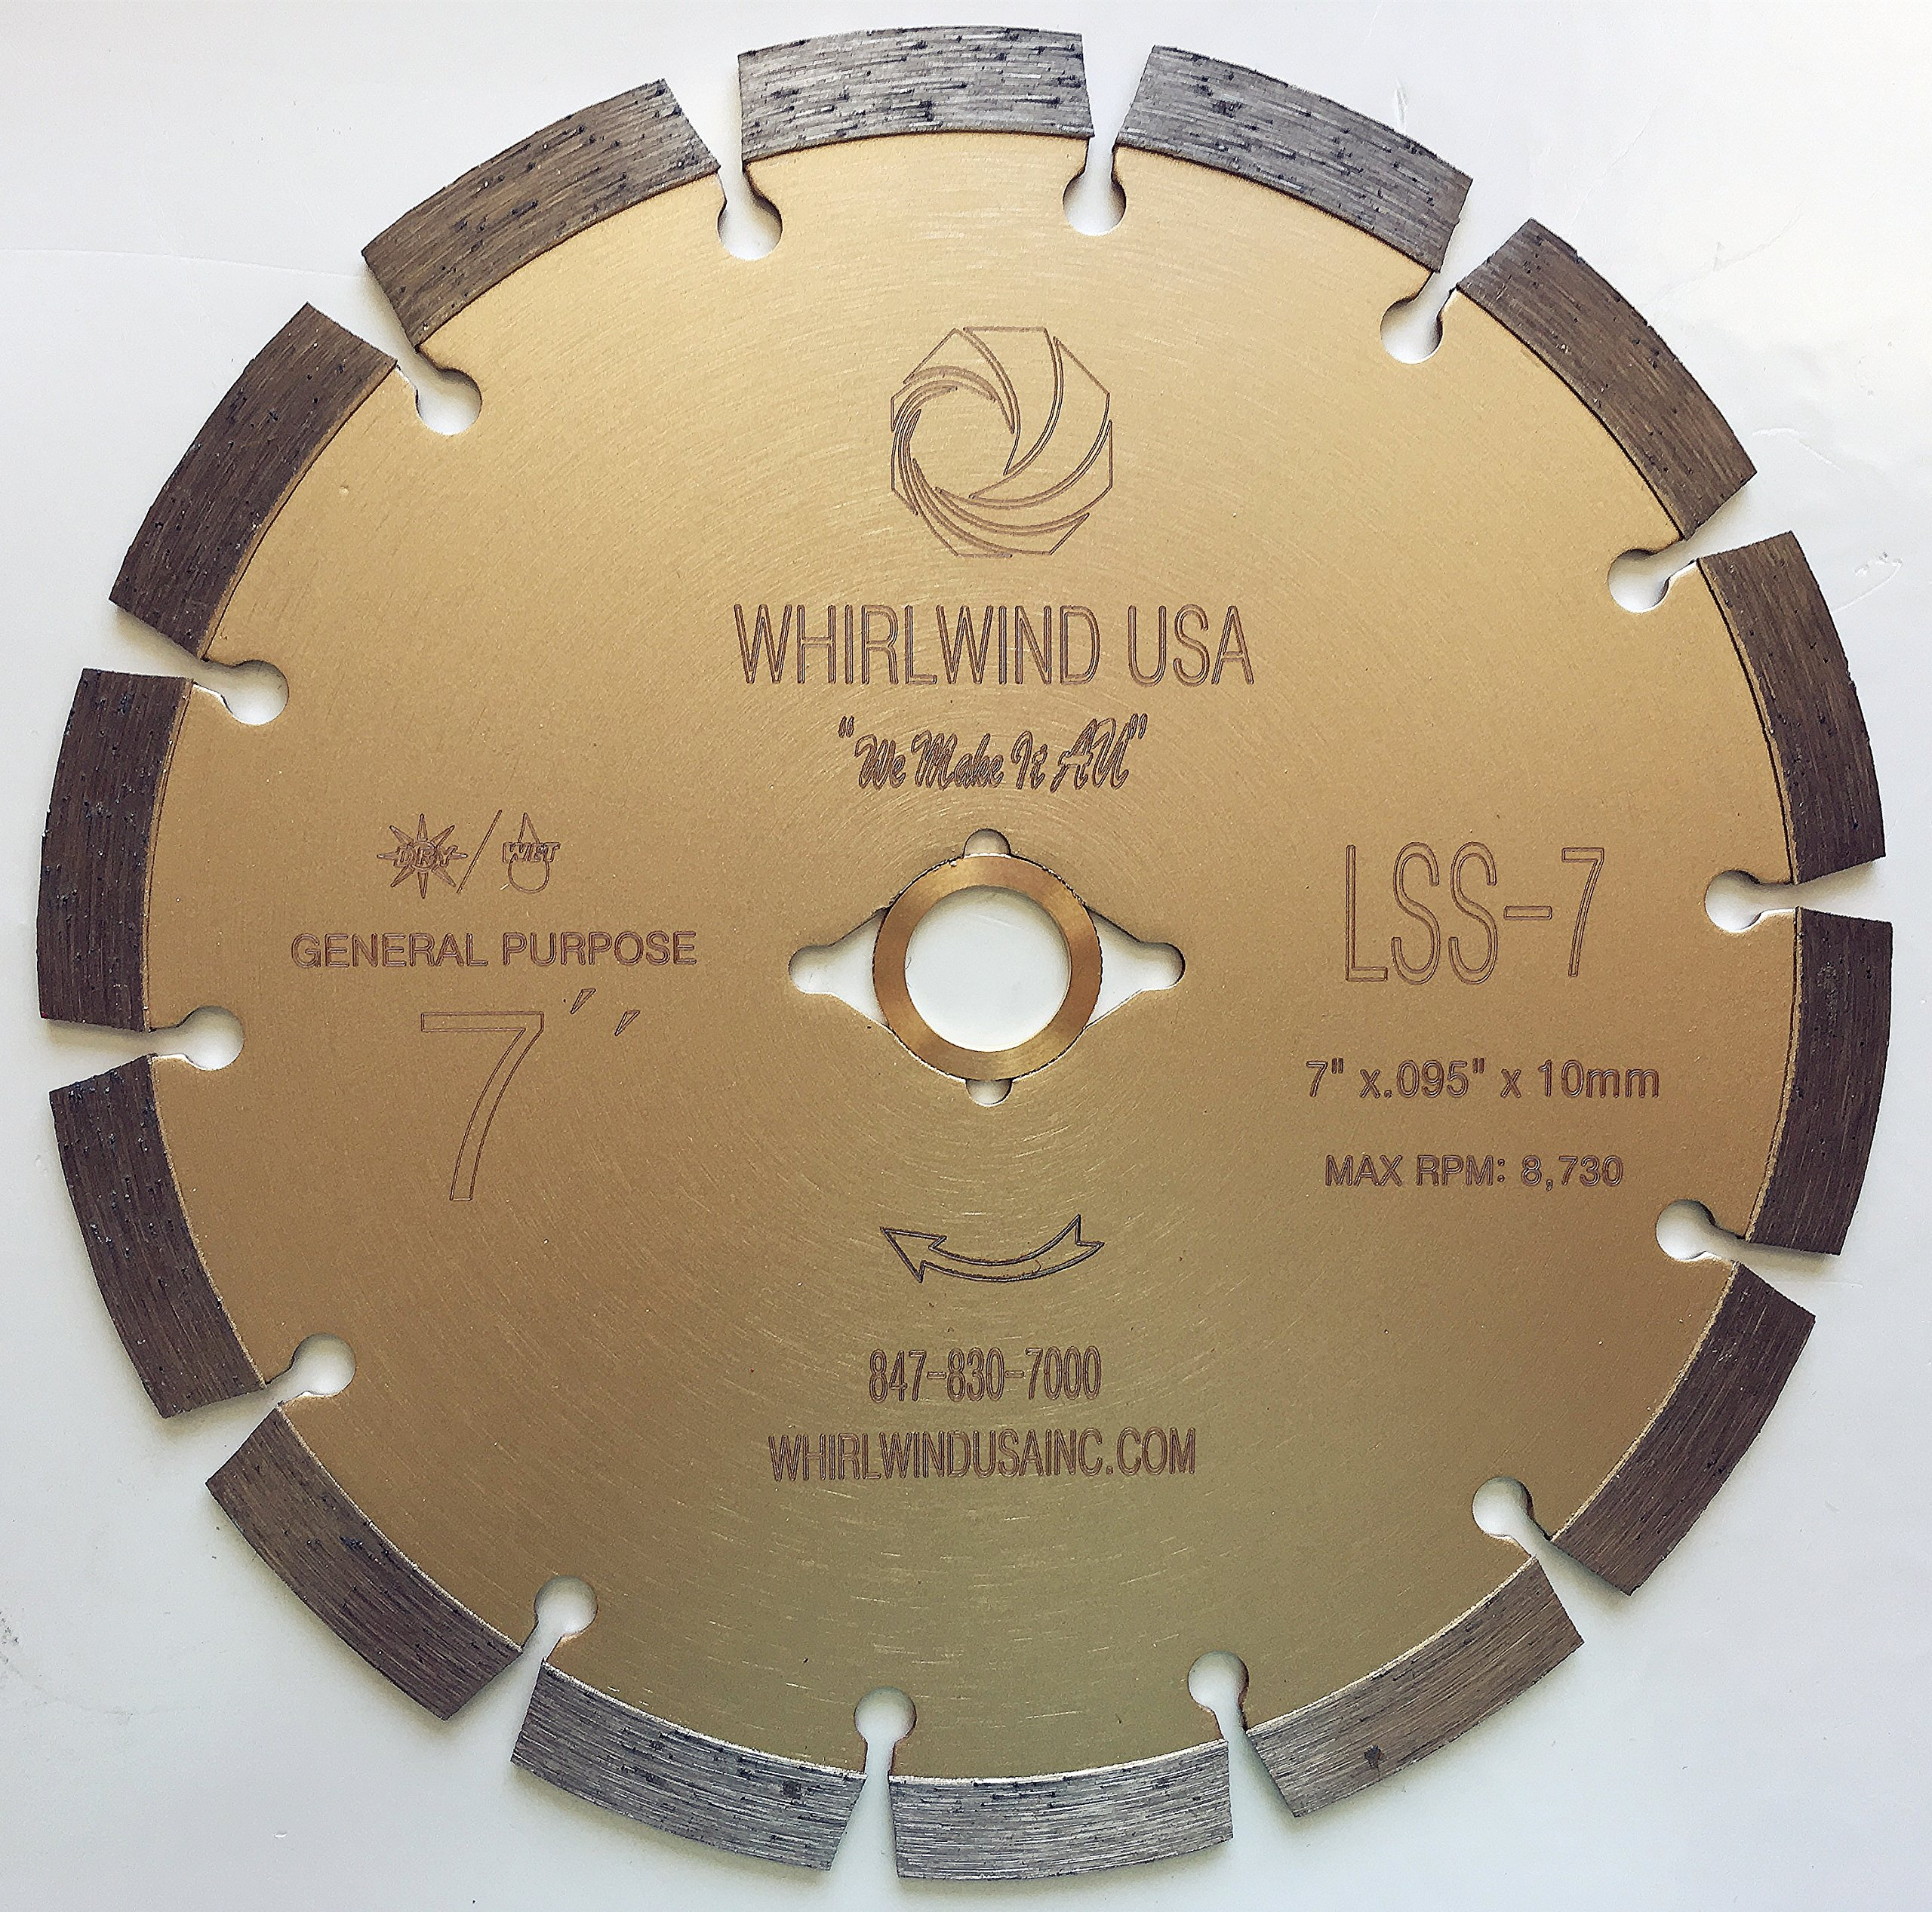 Whirlwind USA LSS 7-Inch Dry or Wet Cutting General Purpose Power Saw Segmented Diamond Blades for Concrete Stone Brick Masonry (Factory Direct Sale) (7'') by WHIRLWIND USA